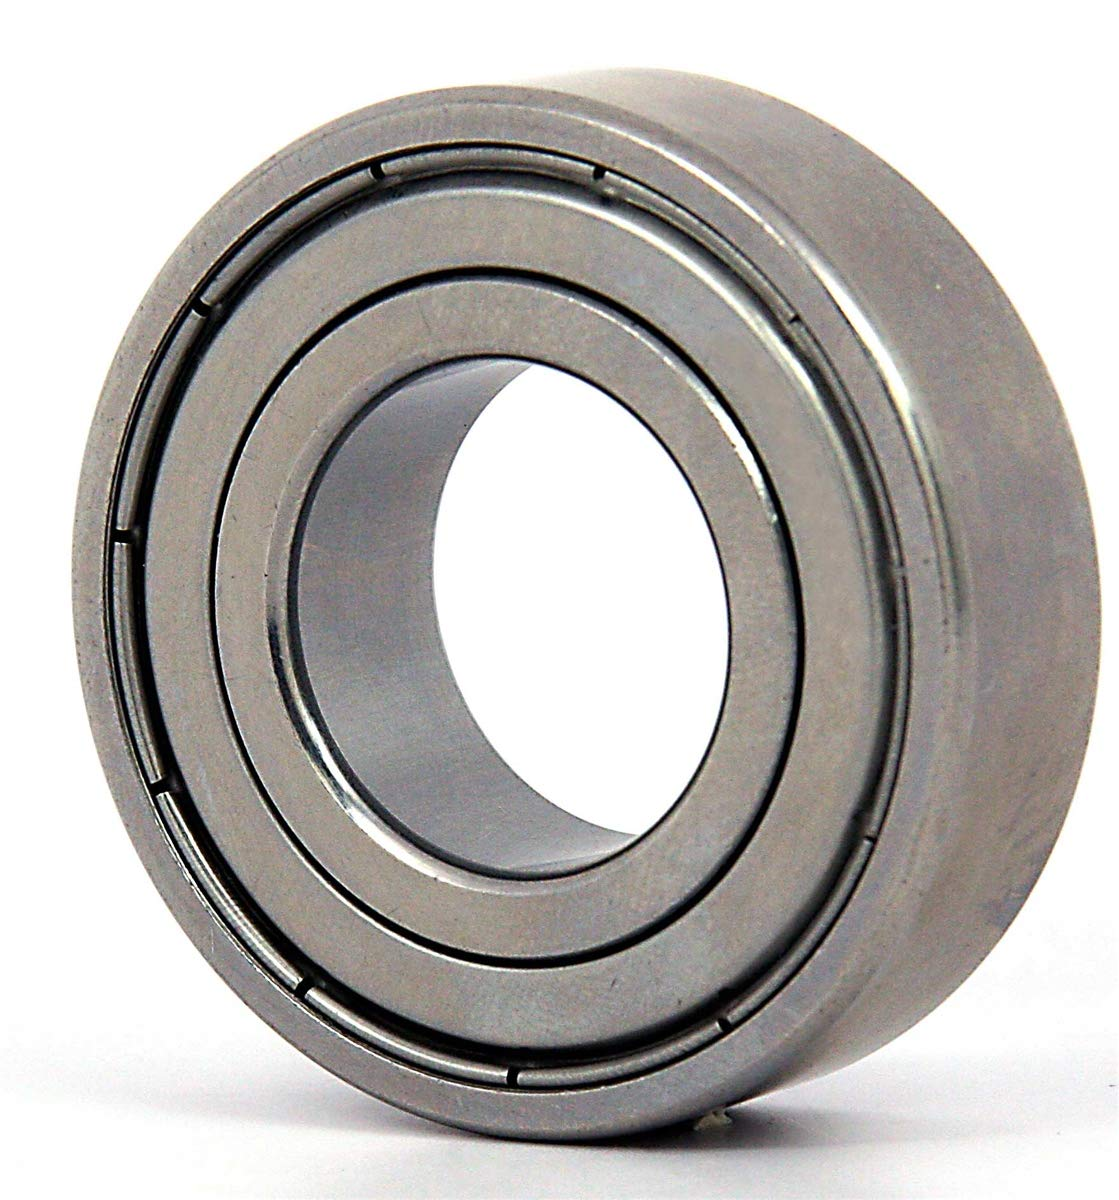 VXB Brand 6206ZZC3 Metal Shielded Electric Motor Quality Ball Bearing 30x62x16 Type: Electric Motor Quality Ball Bearing Closures: Double Shielded with Metal Shields Radial Clearance: C3